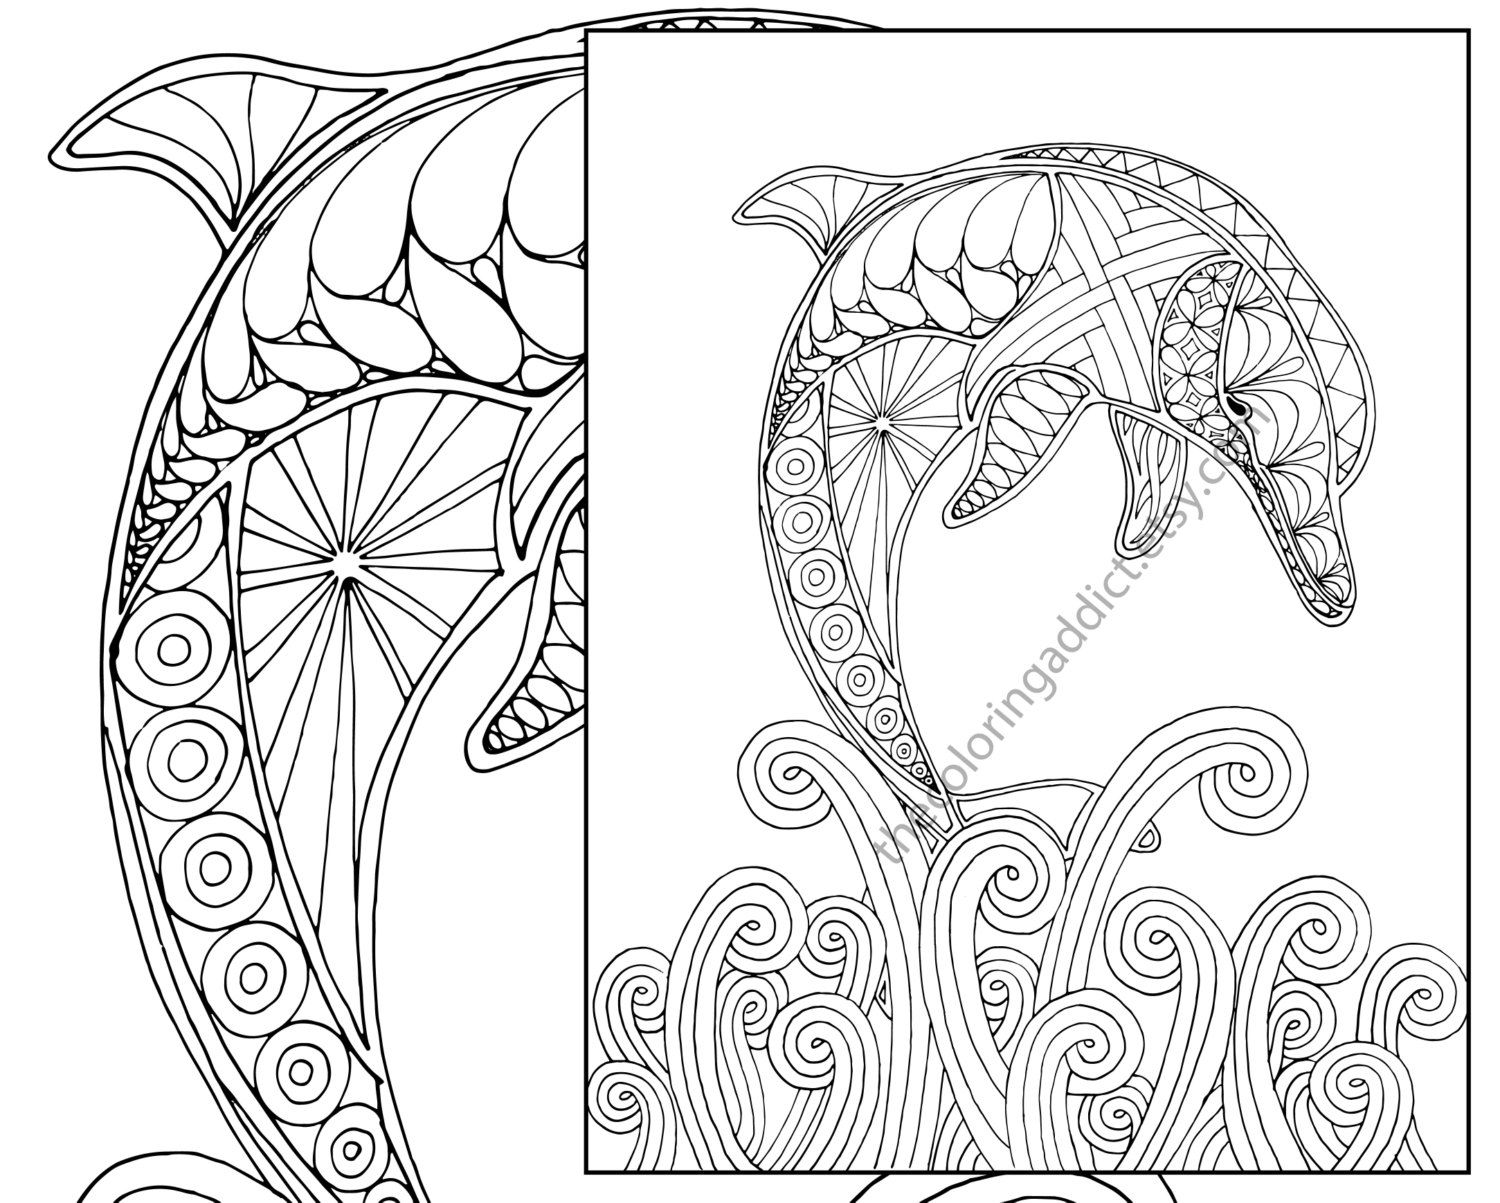 Free coloring pages dolphins - Dolphin Coloring Page Adult Coloring Sheet By Thecoloringaddict